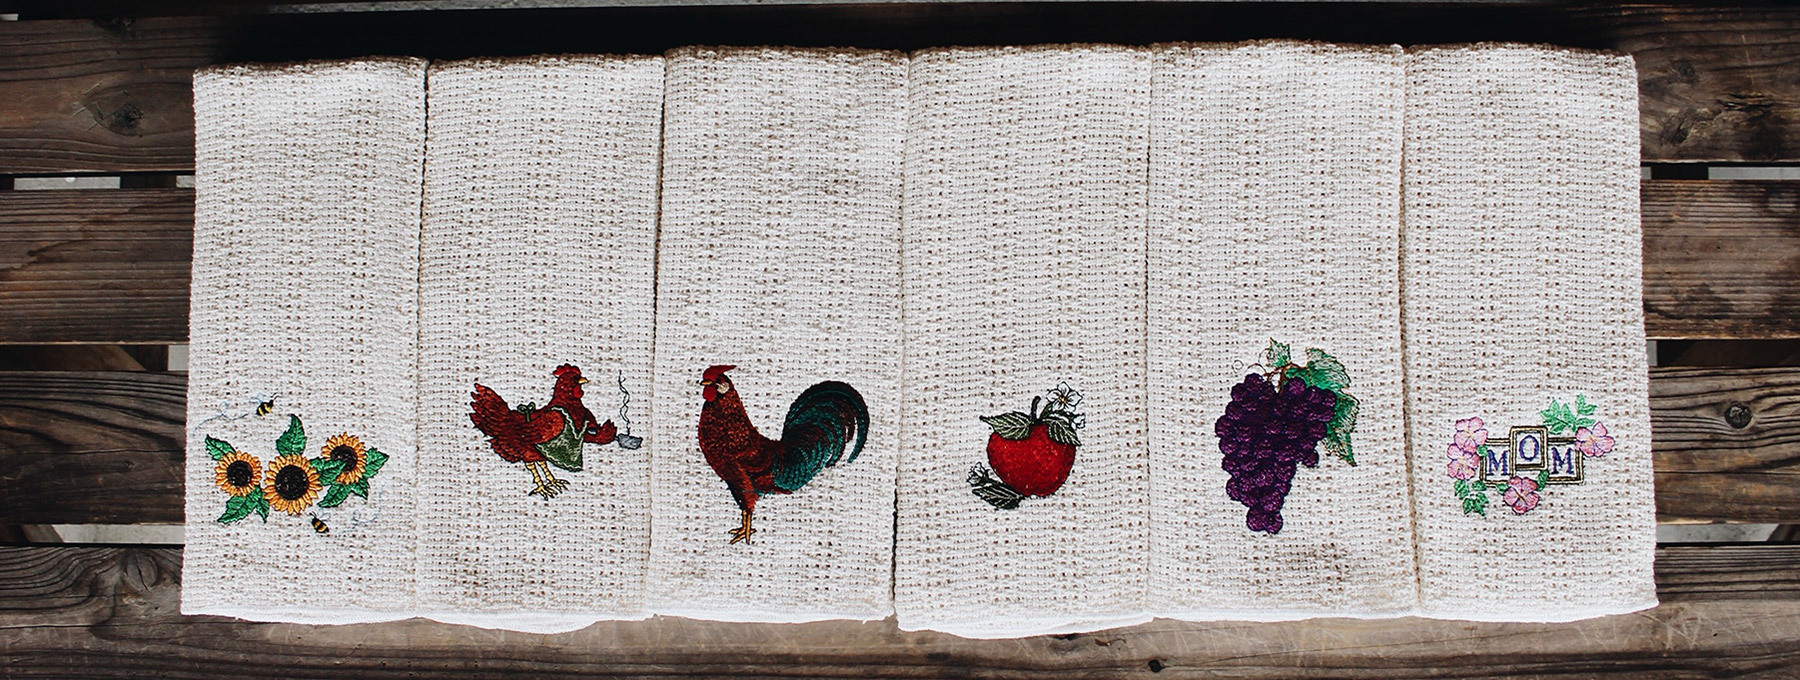 embroideredcottonkitchentowels